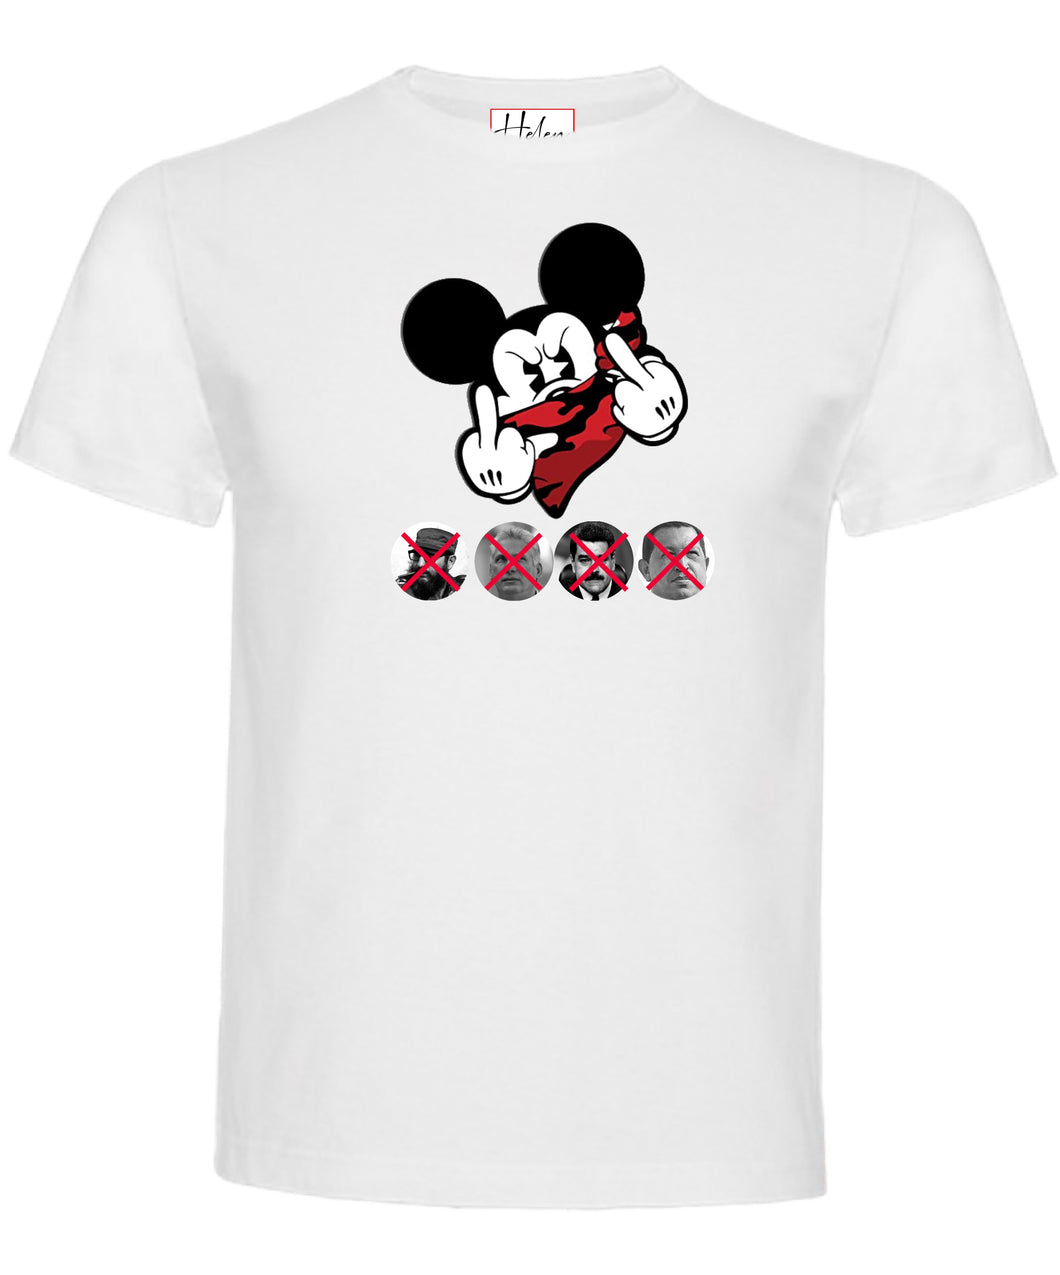 Camiseta cubana anticomunista 🖕🏼Mickey Mouse 🖕🏼